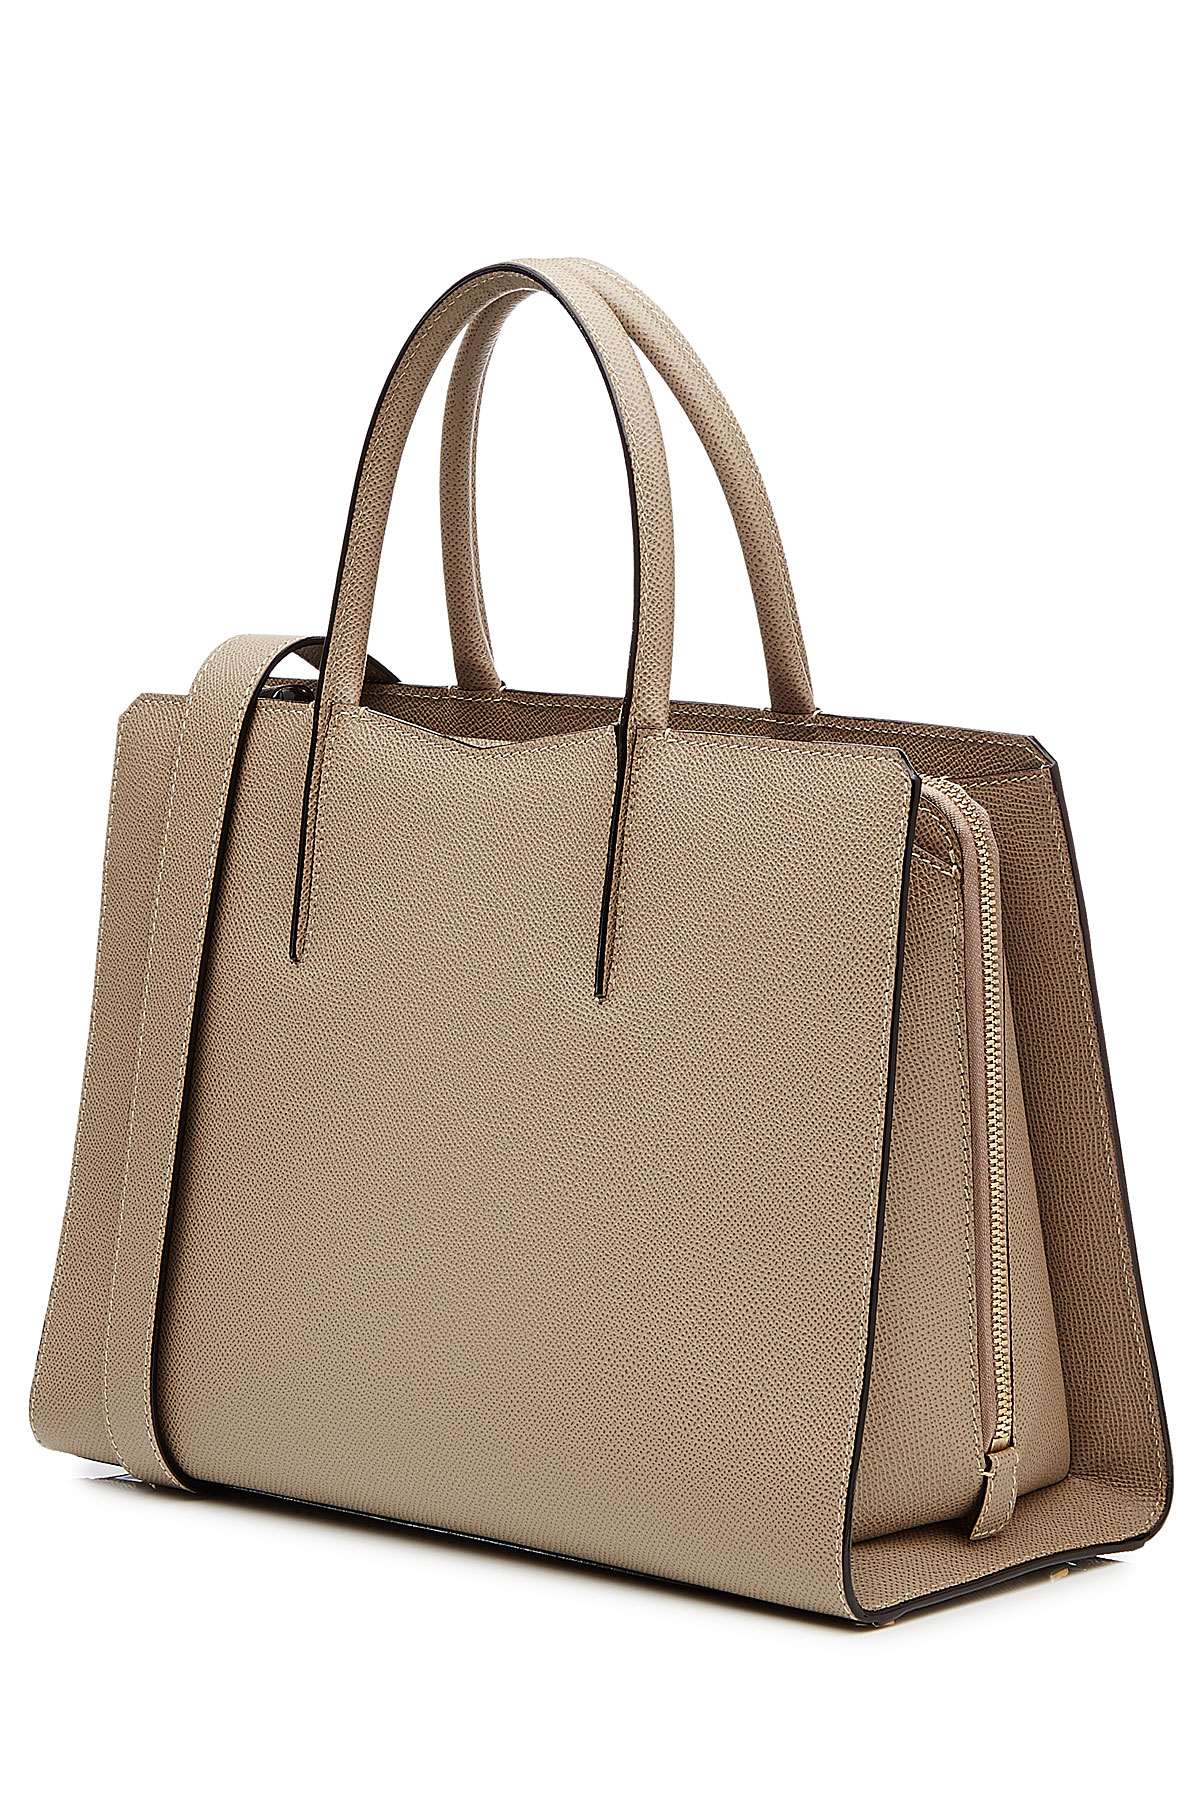 valextra-leather-tote-grey-product-4-852